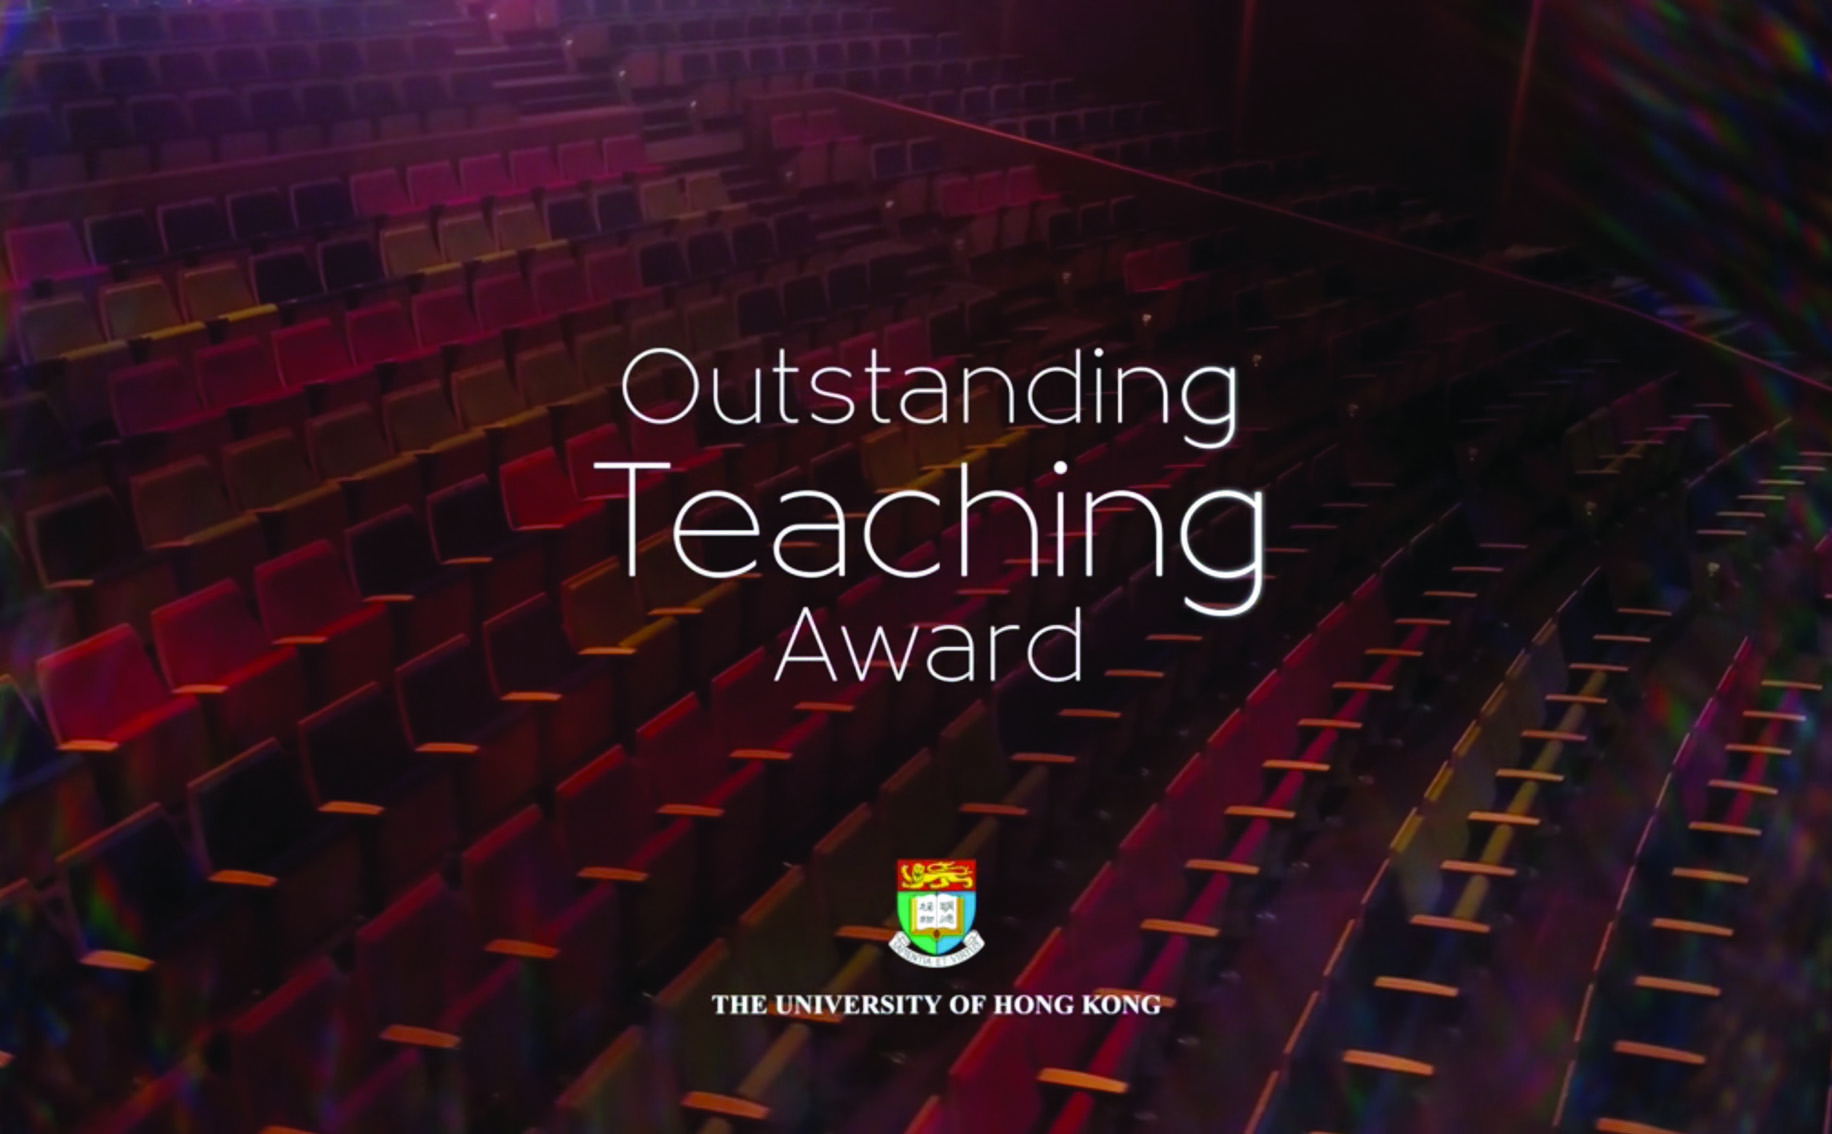 Award Presentation Ceremony for Excellence in Teaching